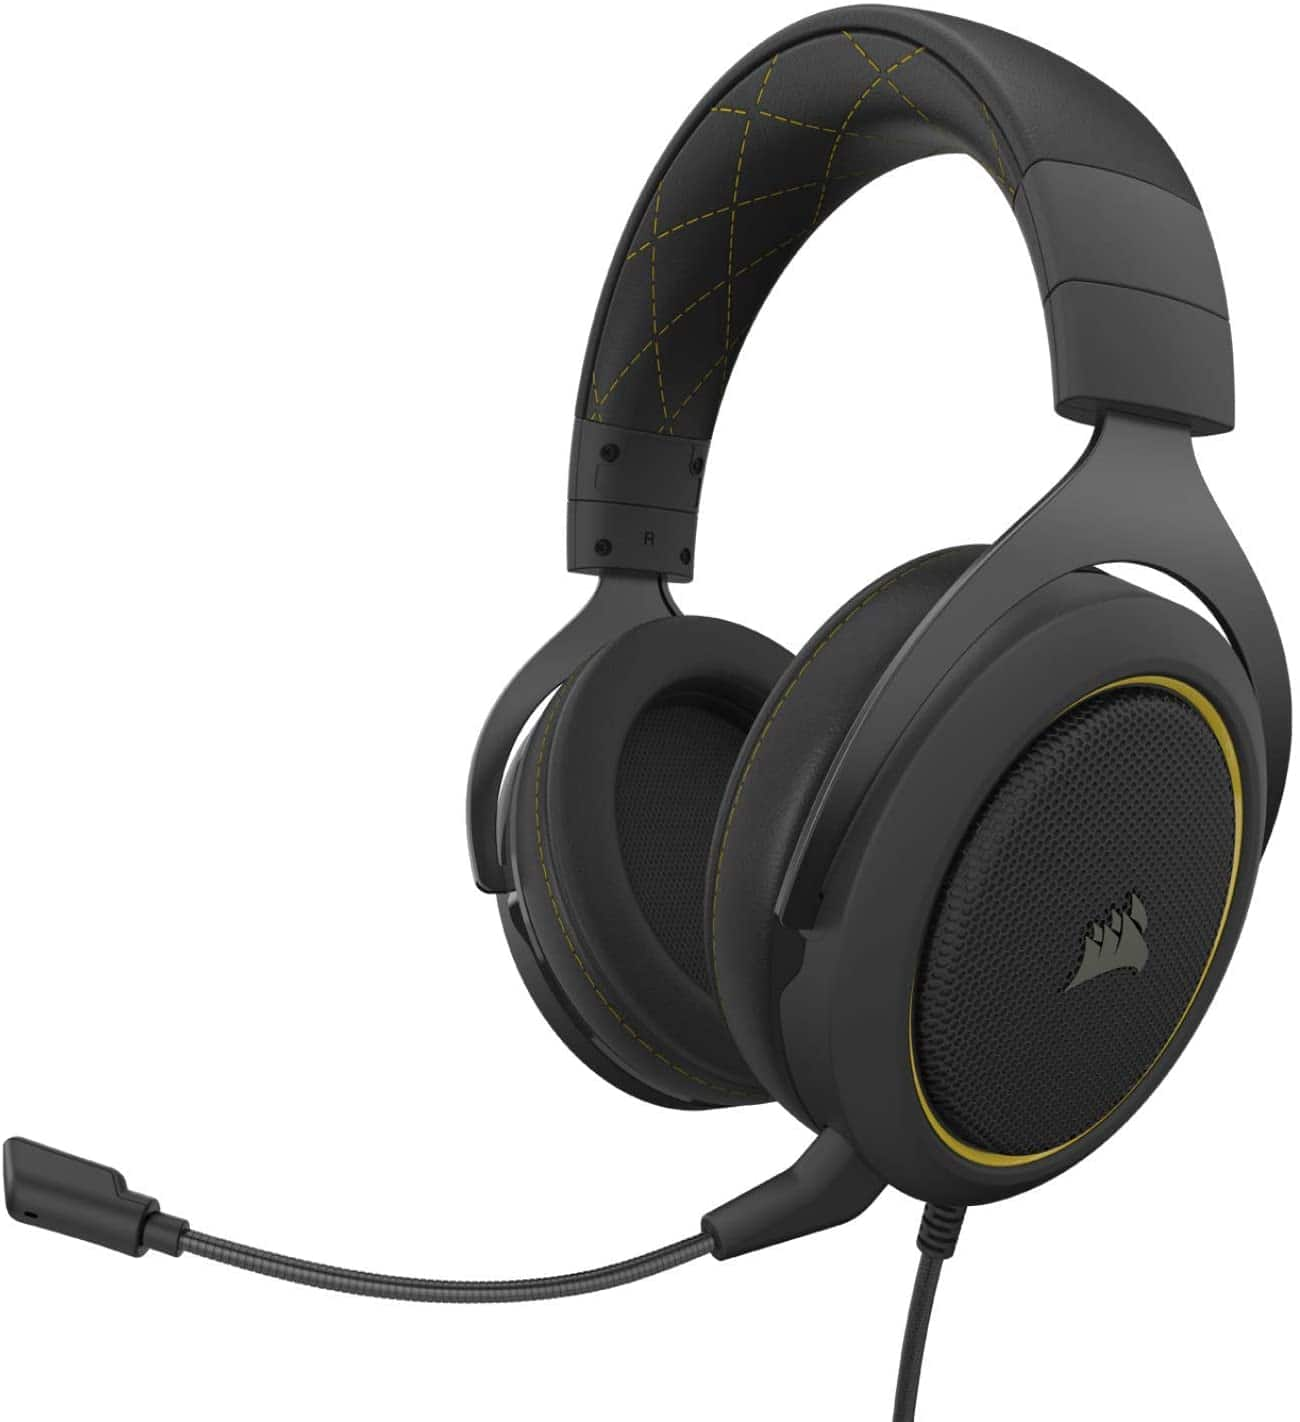 Corsair HS60 Pro 7.1 Virtual Surround Sound Gaming Headset w/ USB DAC